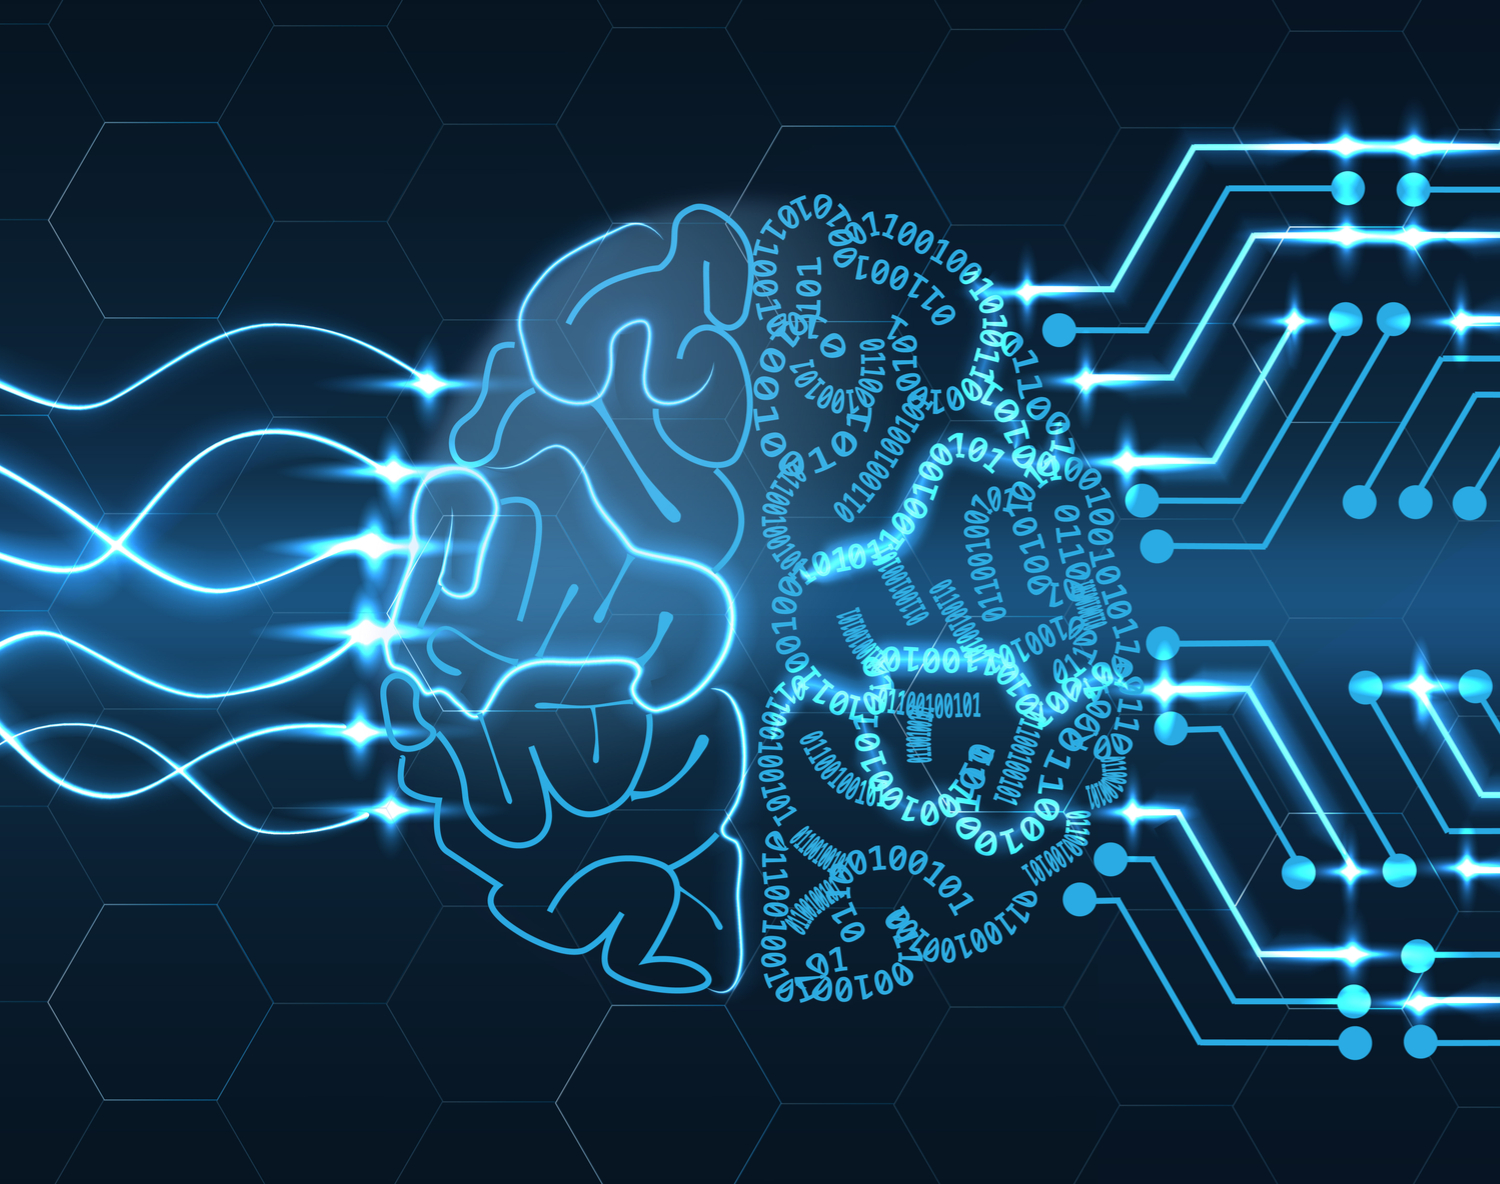 Finding the right AI for your business